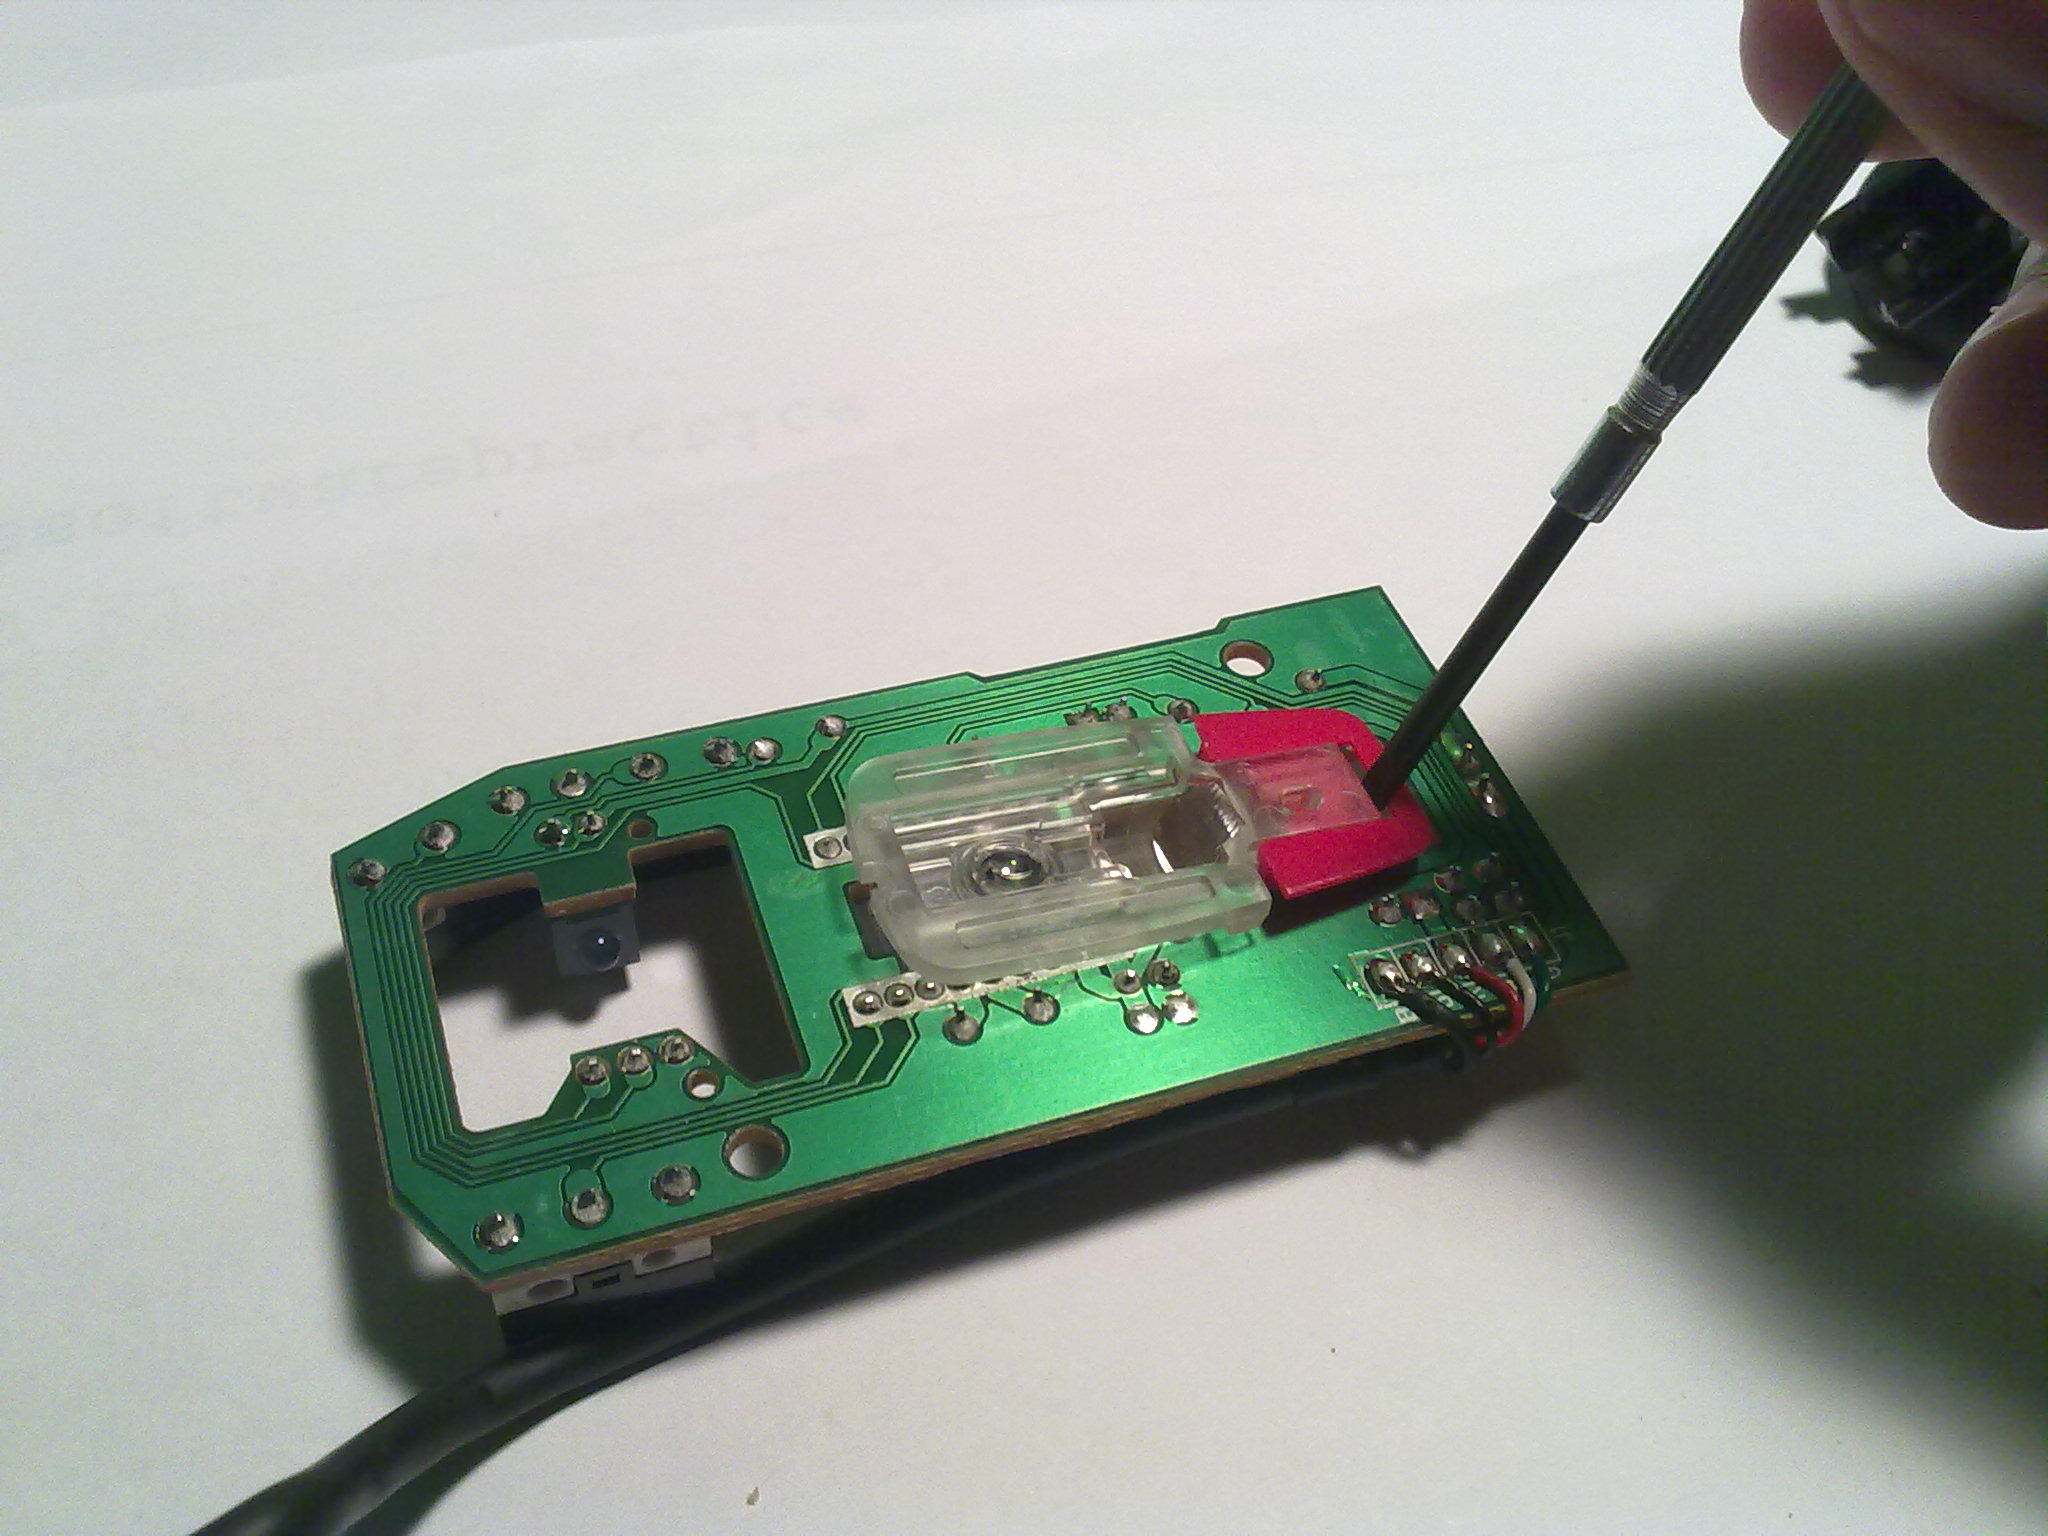 Small Led Circuit Board Hacked Gadgets Diy Tech Blog